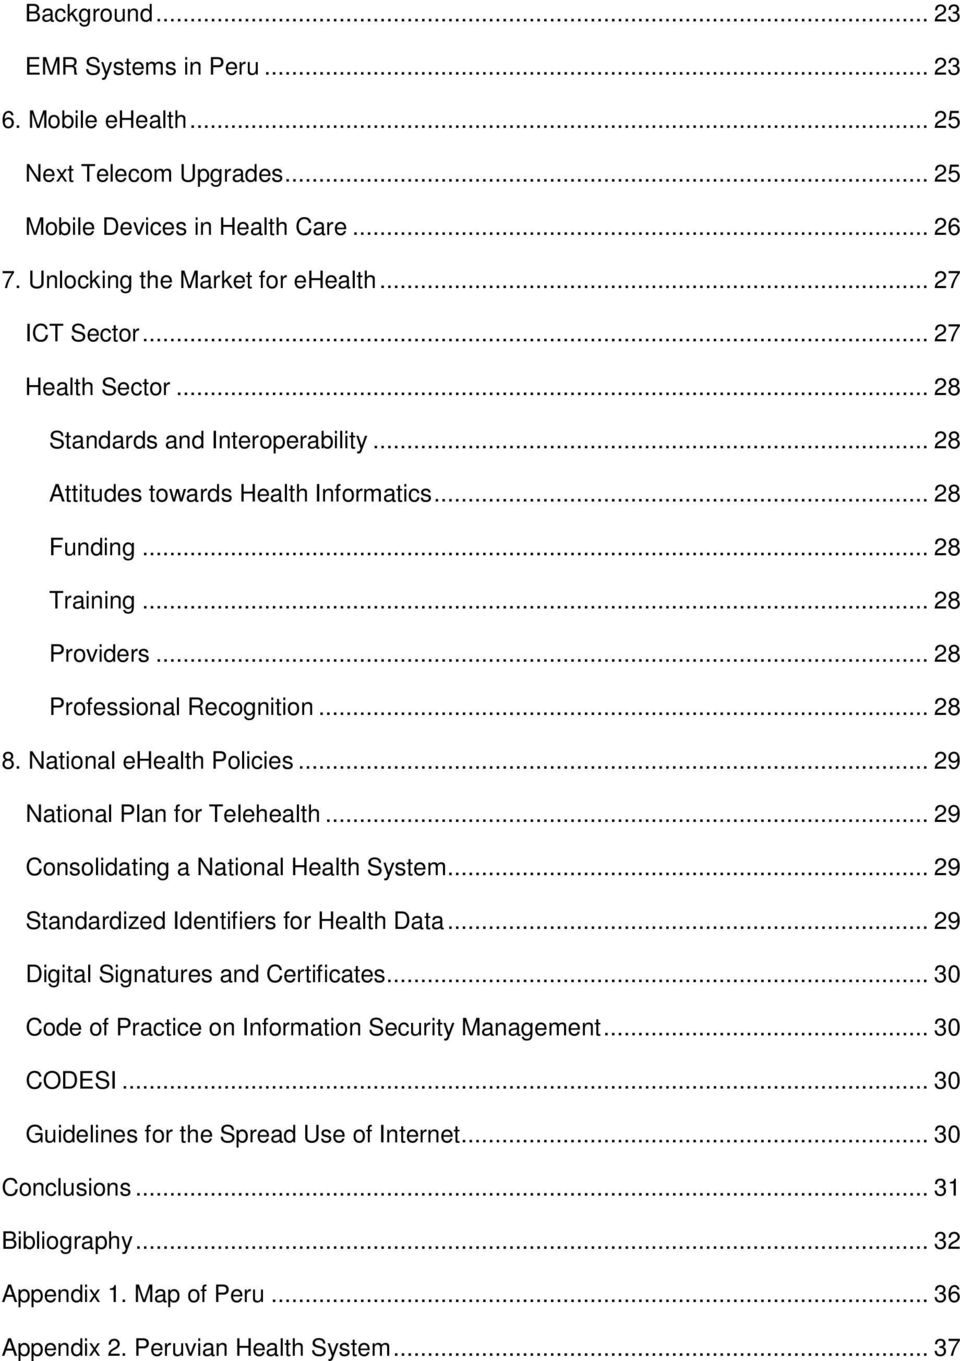 National ehealth Policies... 29 National Plan for Telehealth... 29 Consolidating a National Health System... 29 Standardized Identifiers for Health Data... 29 Digital Signatures and Certificates.